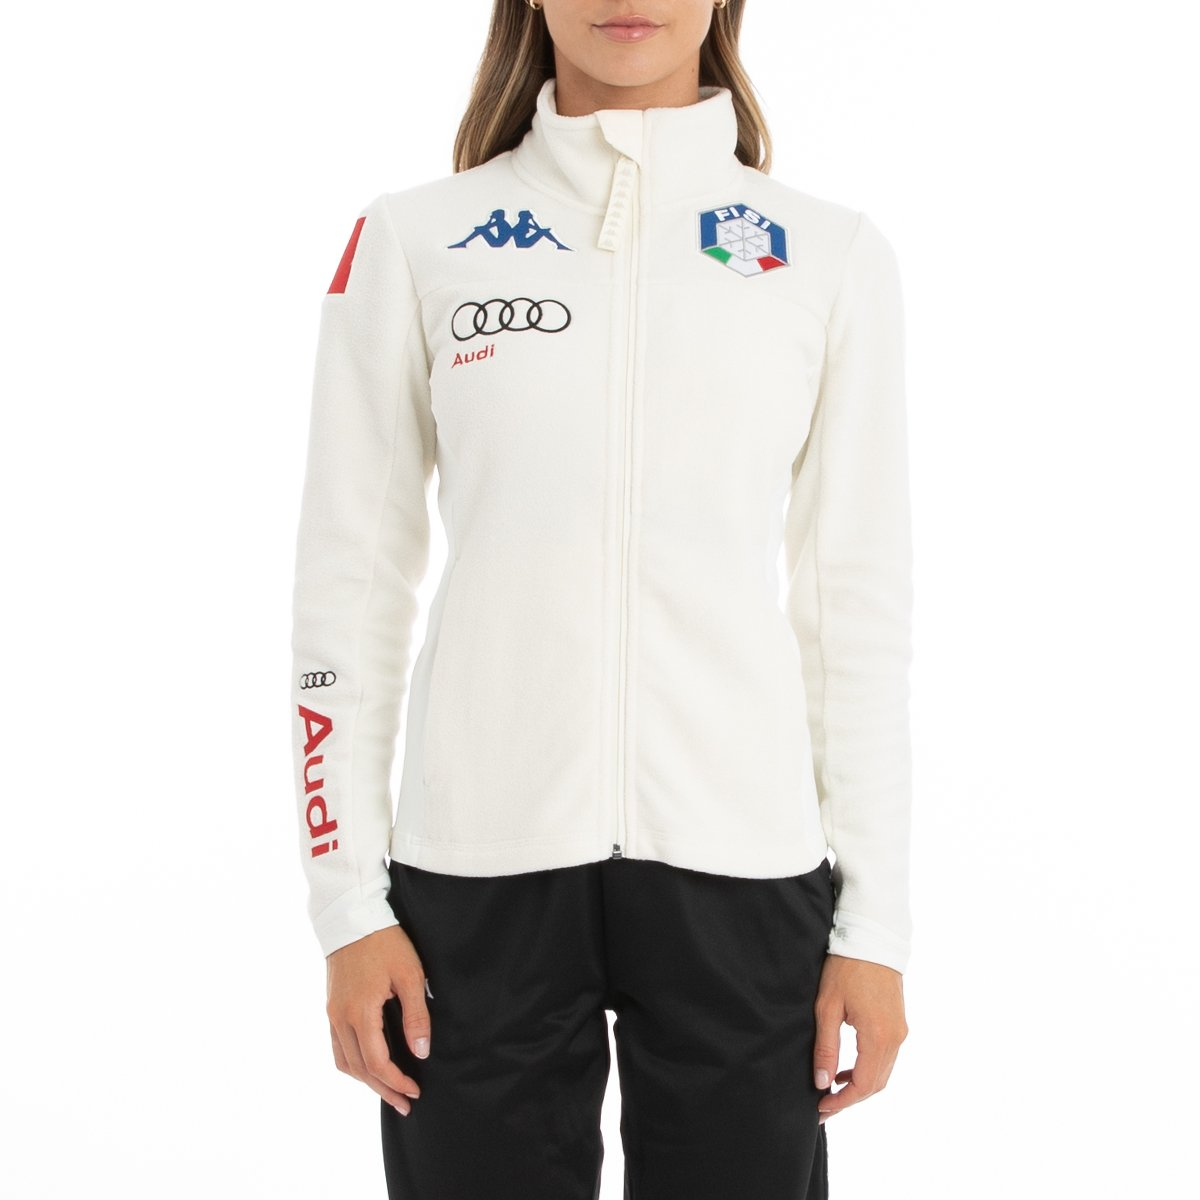 Kappa 6Cento 688 Fisi Fleece Jacket - White